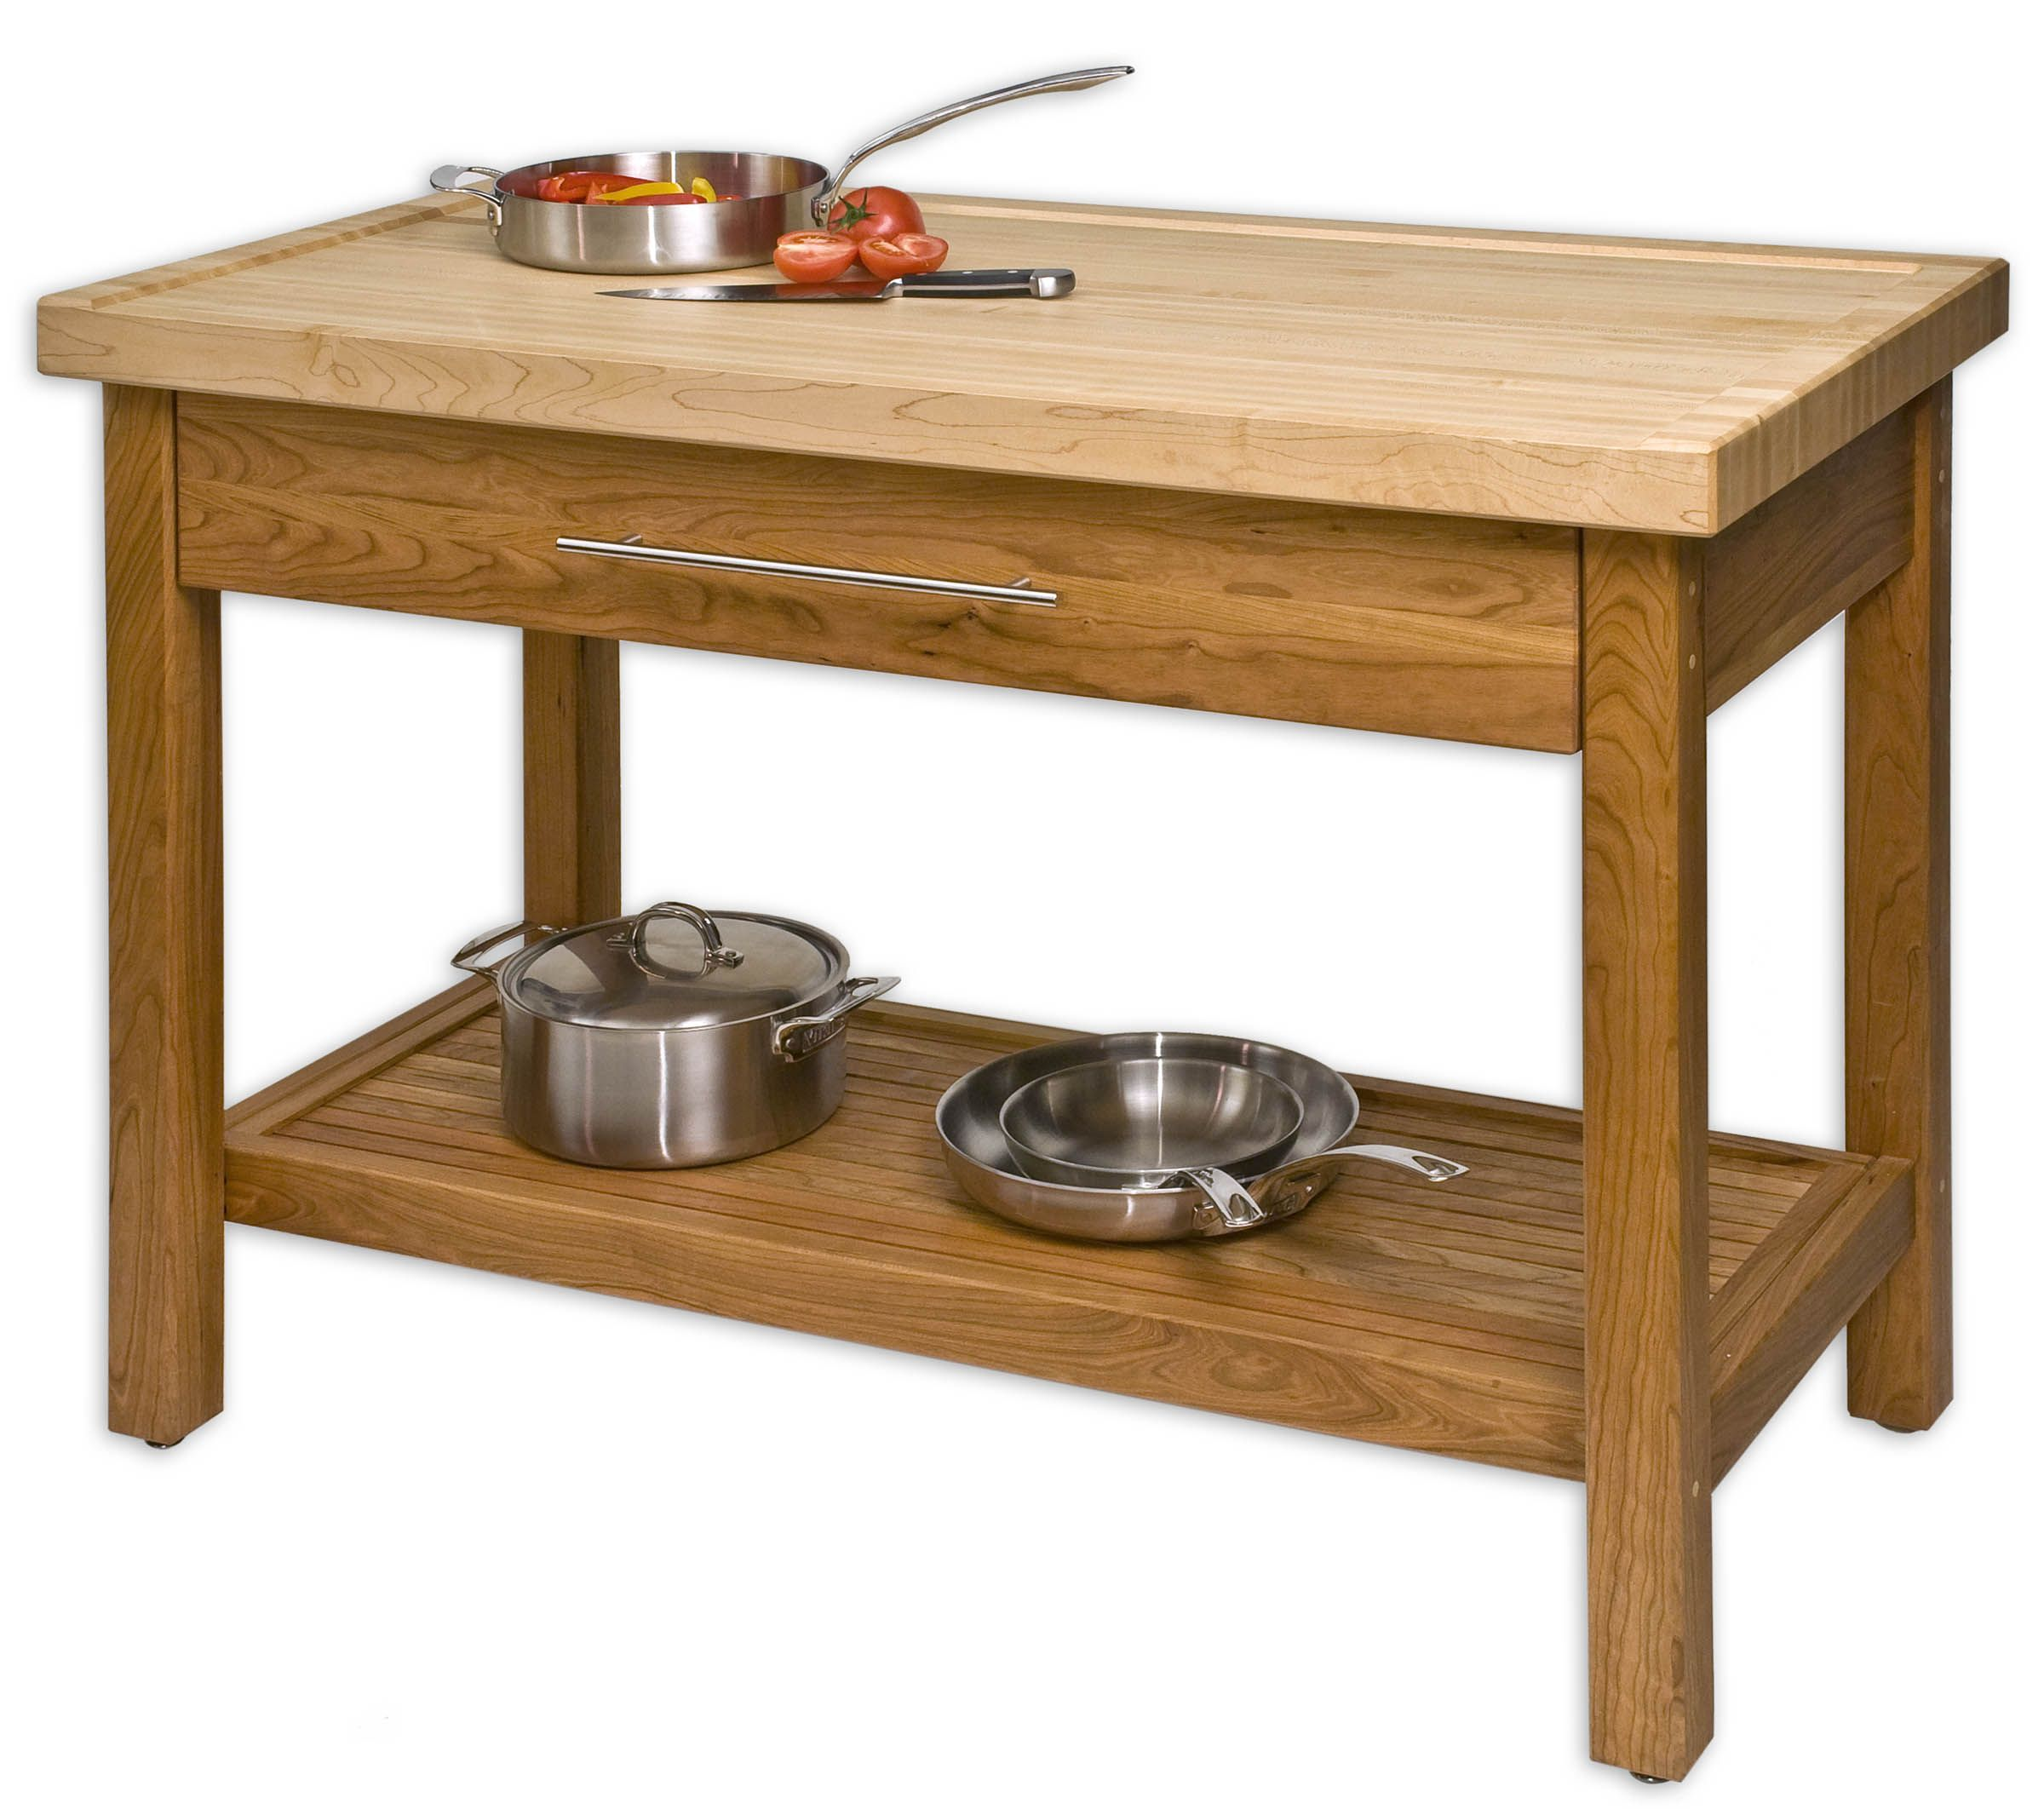 Narrow Kitchen Island Table Unfinished Teak Wood Kitchen Island Table Stand With Storage And